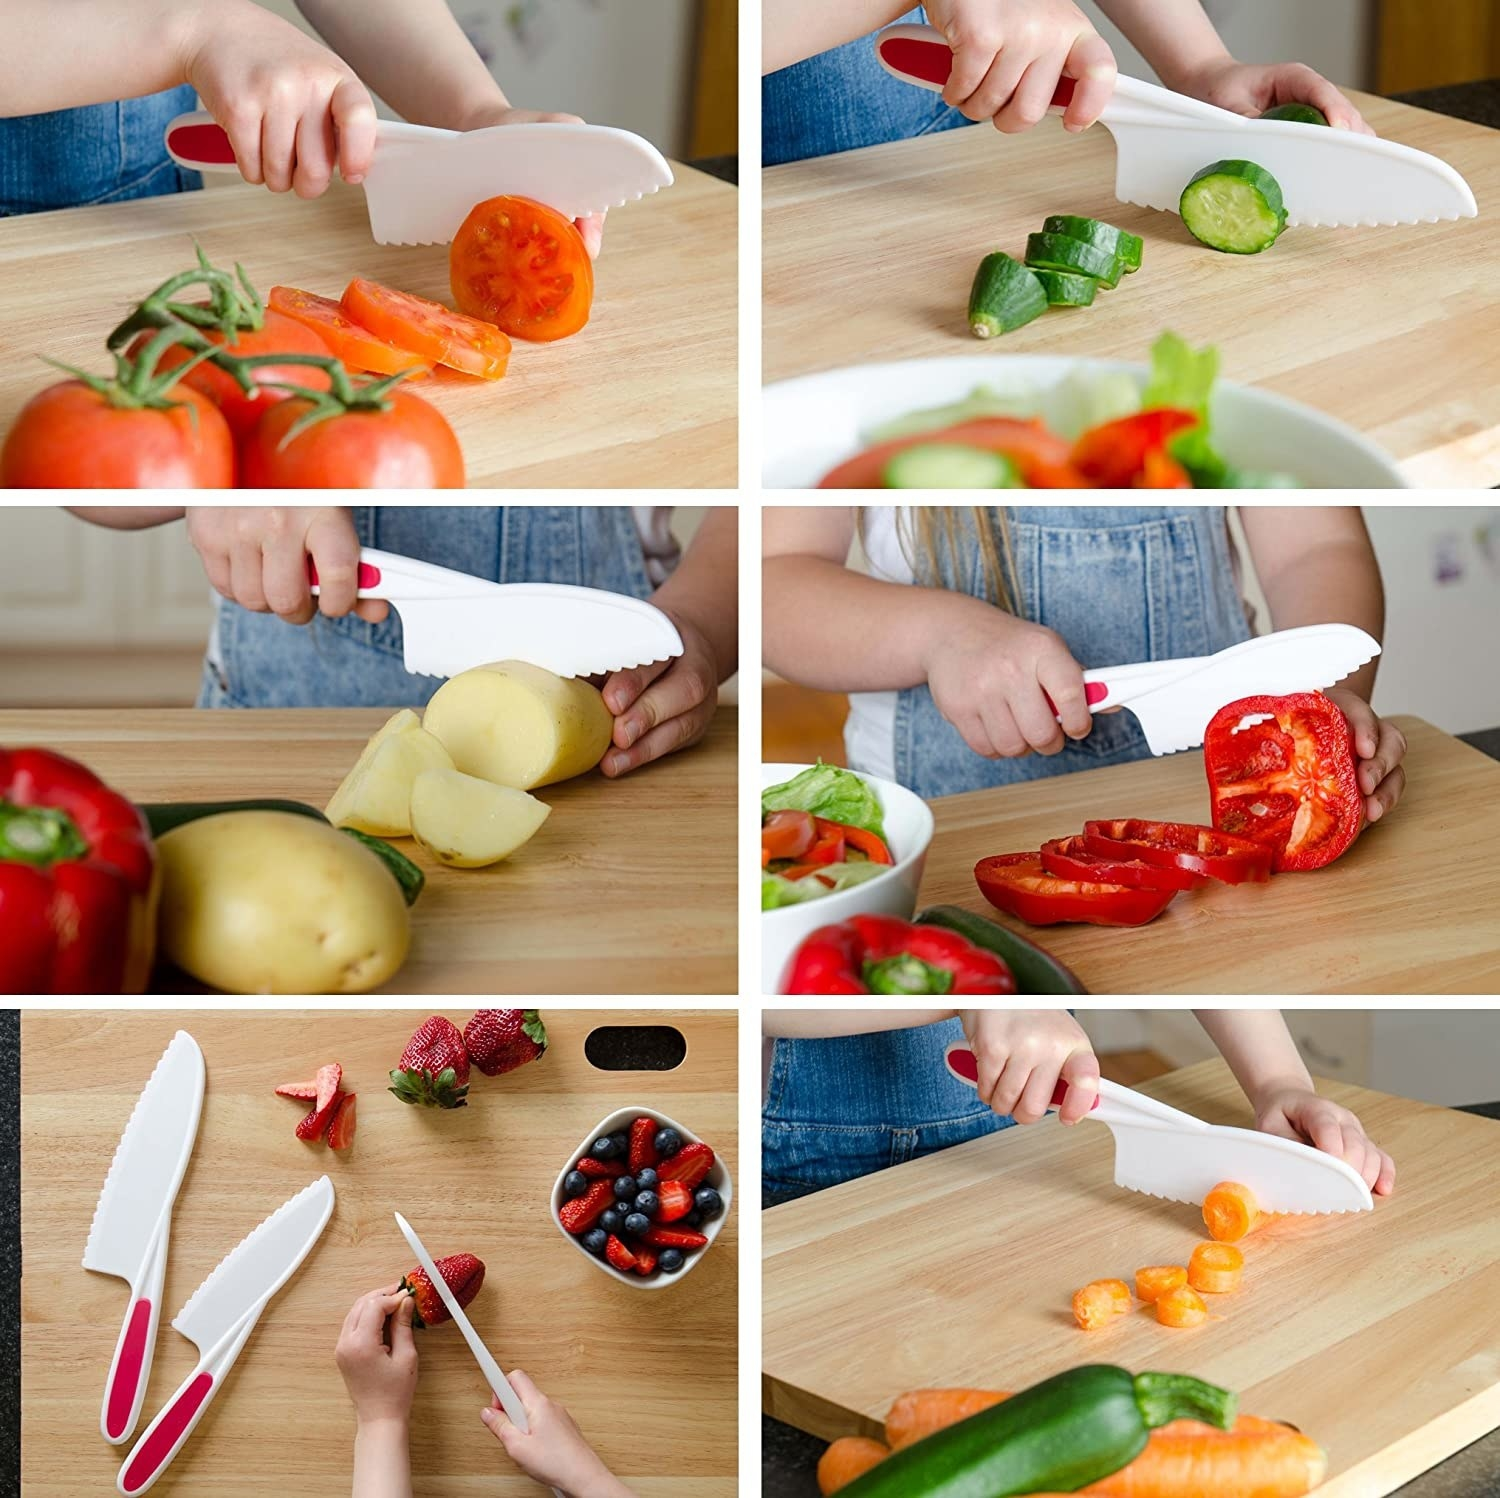 Three child-sized safety knives with a kid cutting potatoes, peppers, carrots, tomatoes, and cucumber